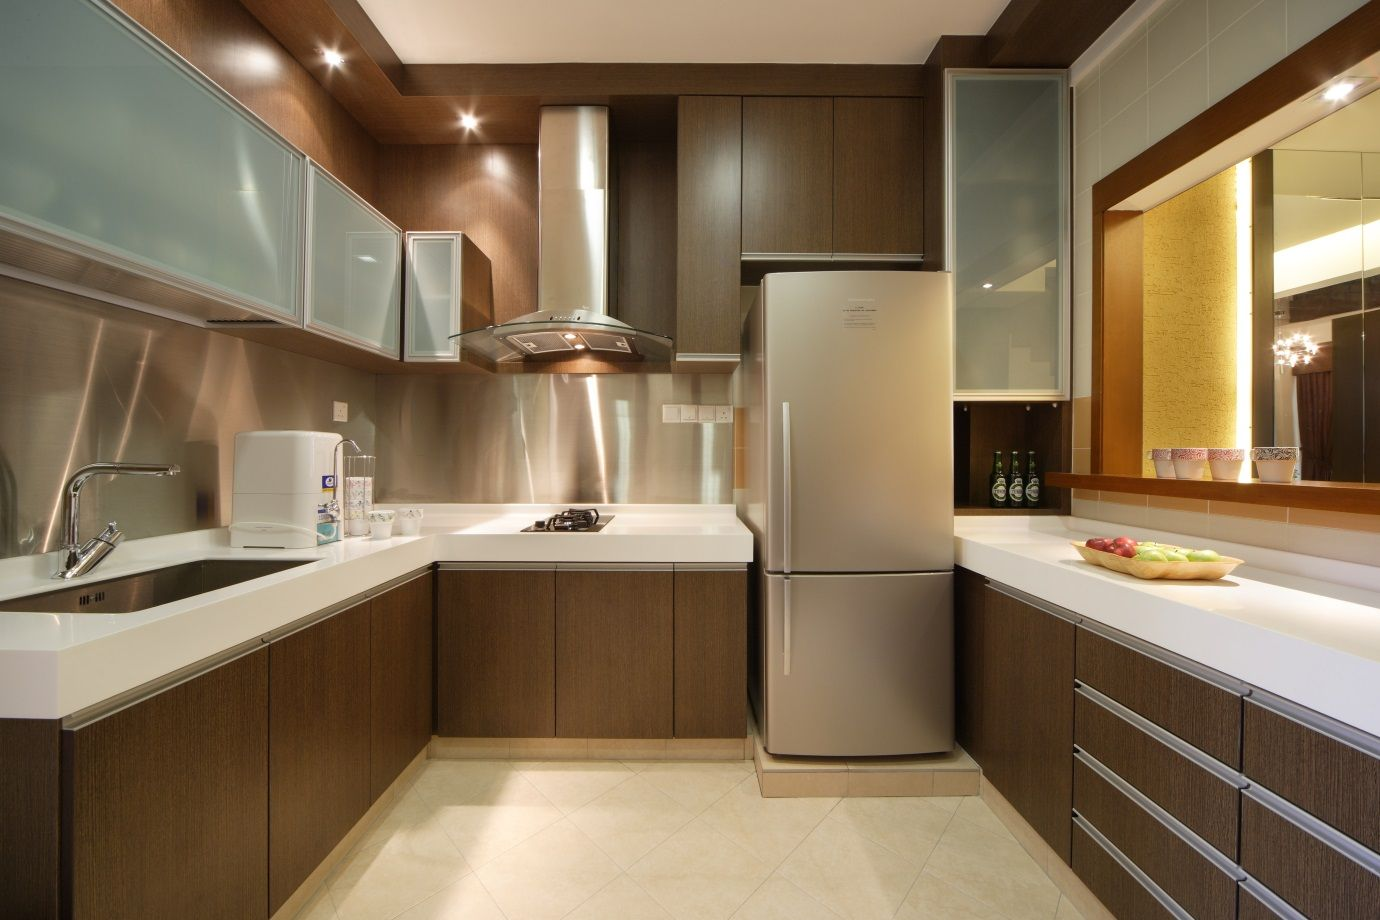 Malaysia modern kitchen cabinet design google search for Kitchen ideas singapore